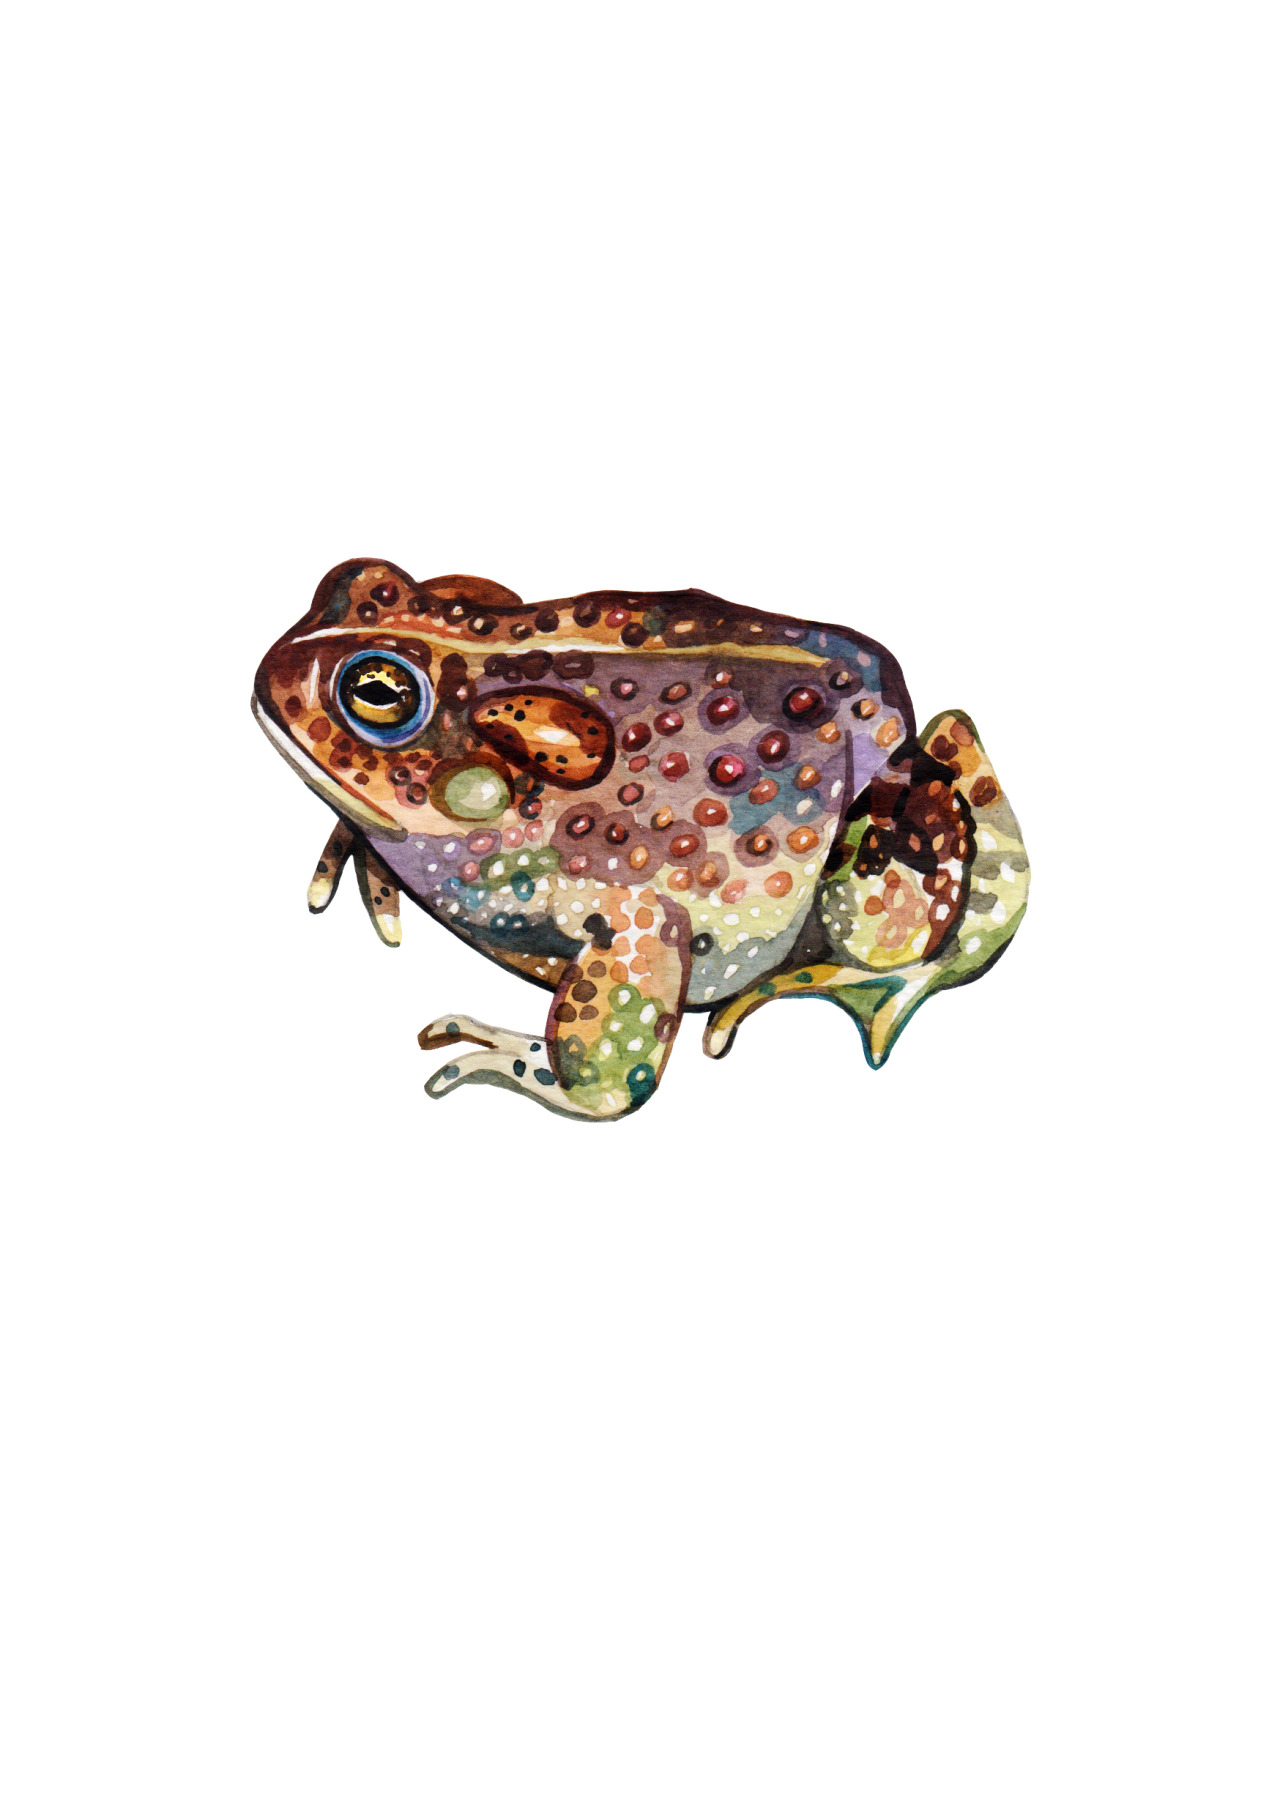 HOLLY EXLEY ILLUSTRATION — Arizona toad in watercolour. I am a ...